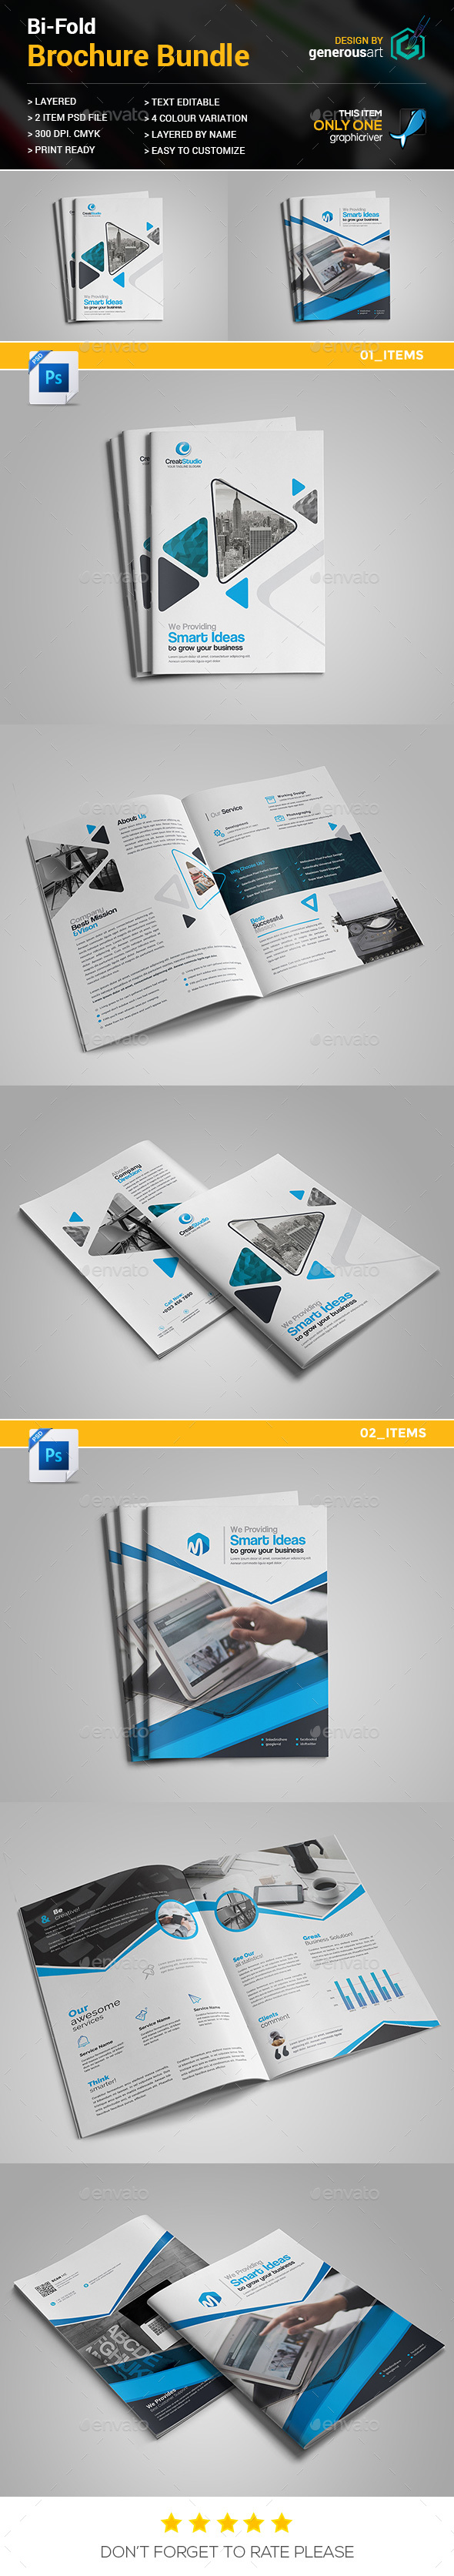 Business Bi-Fold Brochure Bundle 2 in 1 - Brochures Print Templates